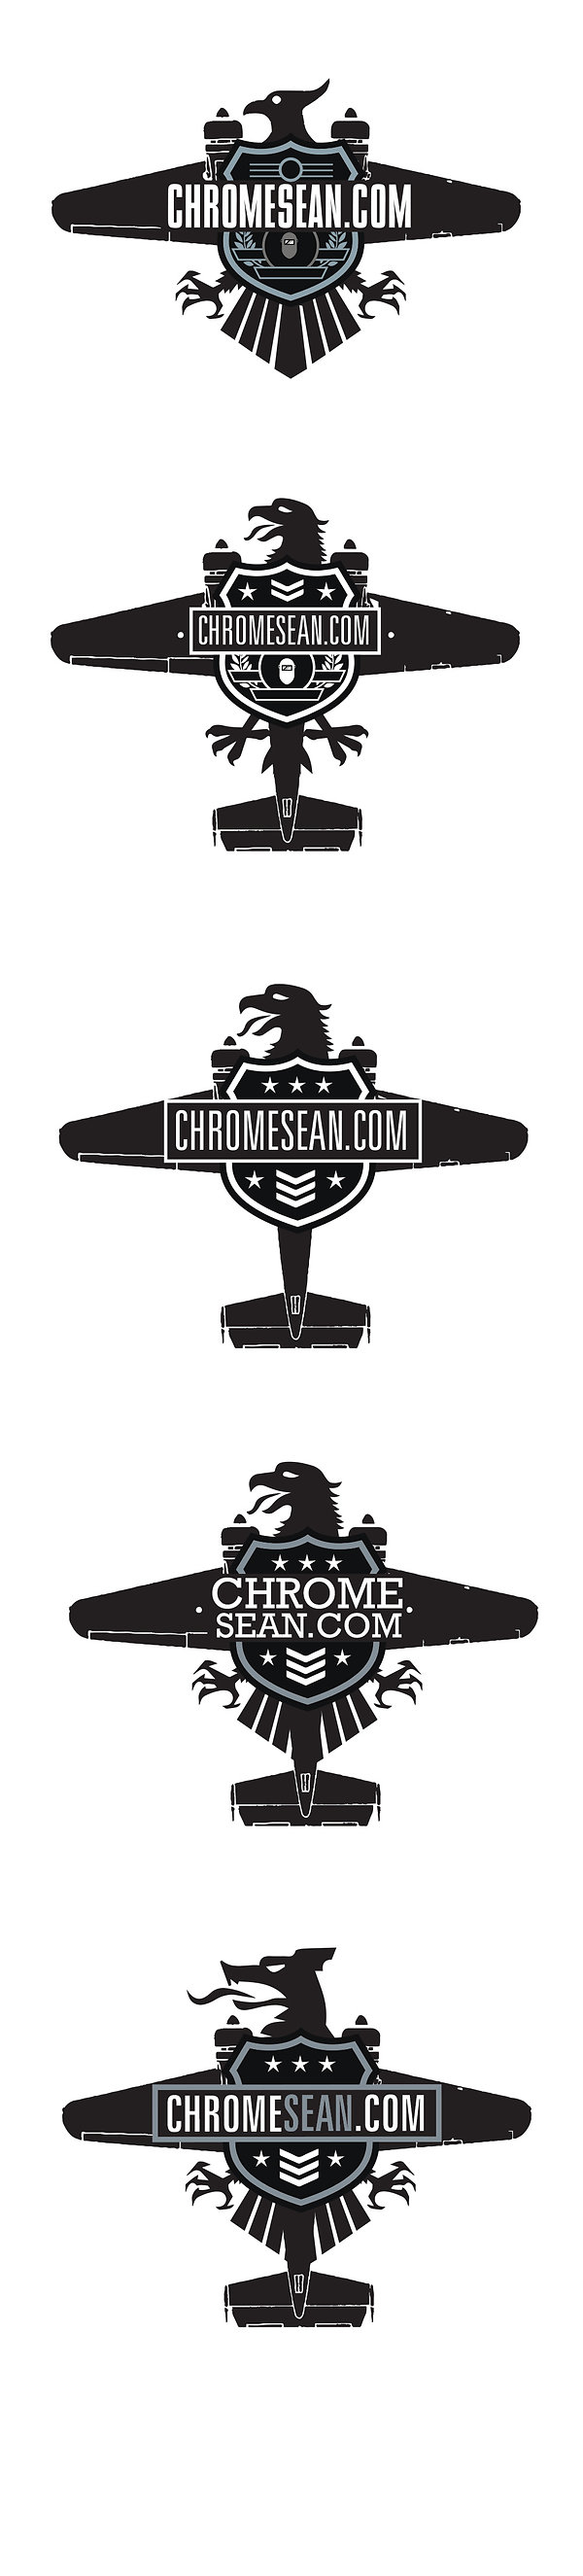 Denver Logo Design for ChromeSean.com